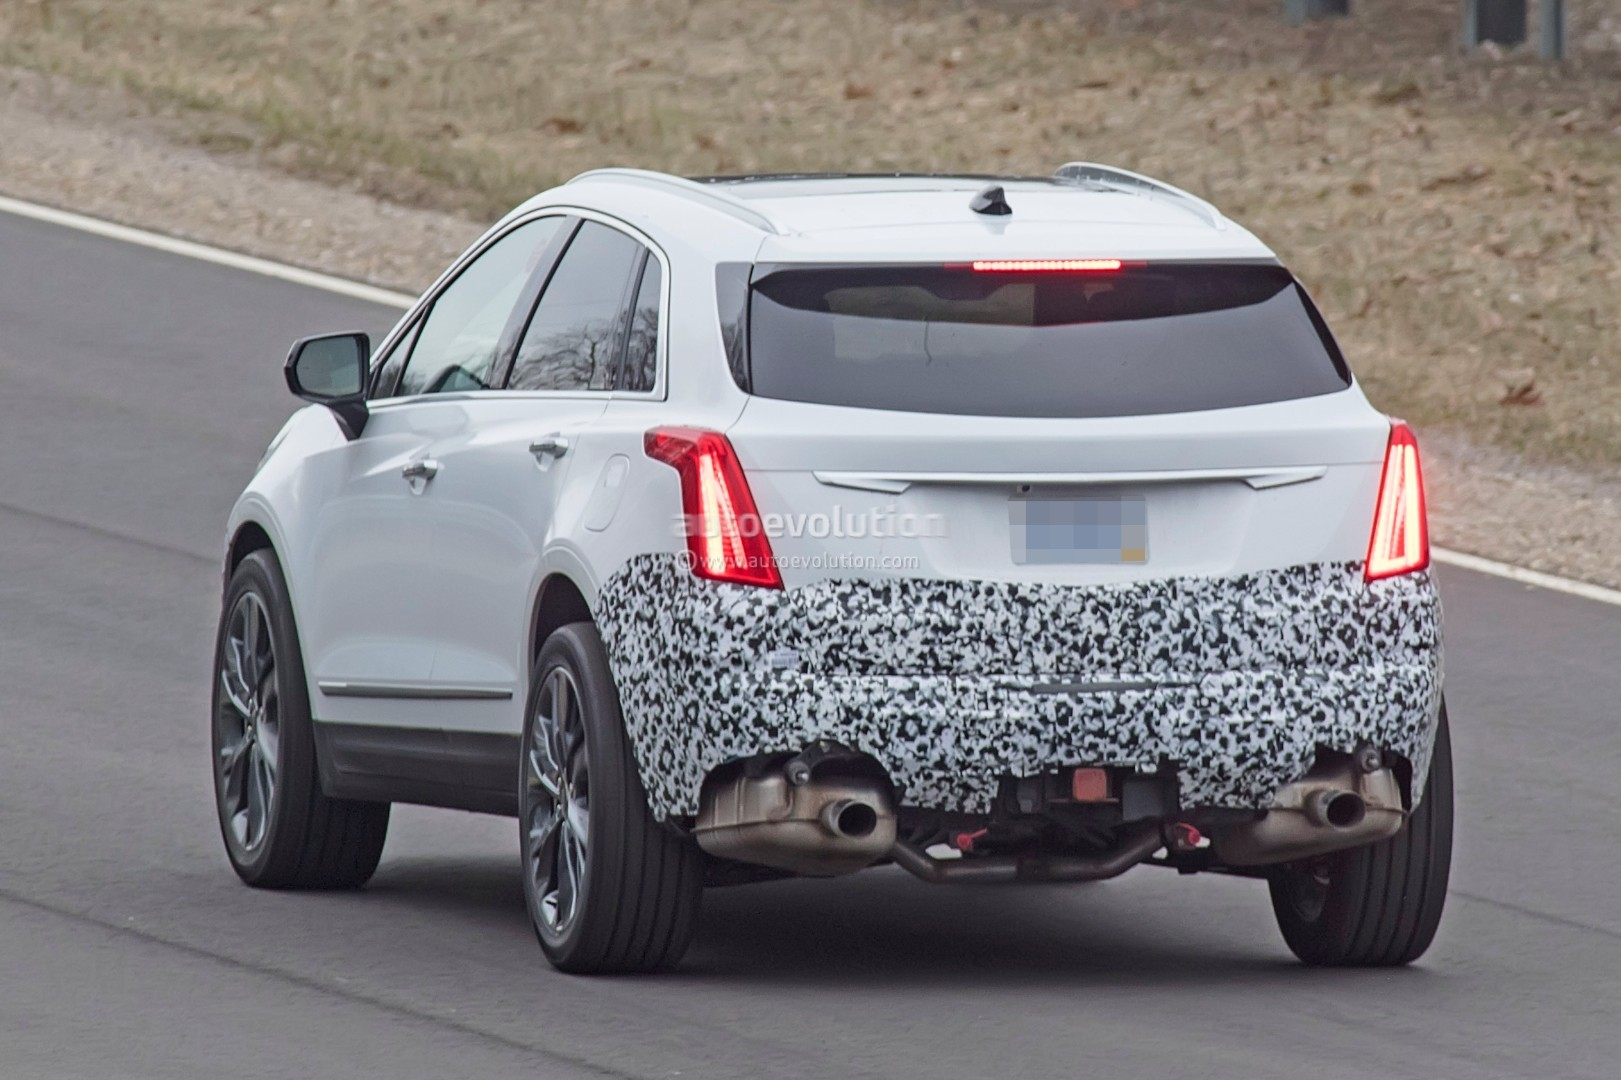 2020 Cadillac XT5 Facelift | Spied for the first time